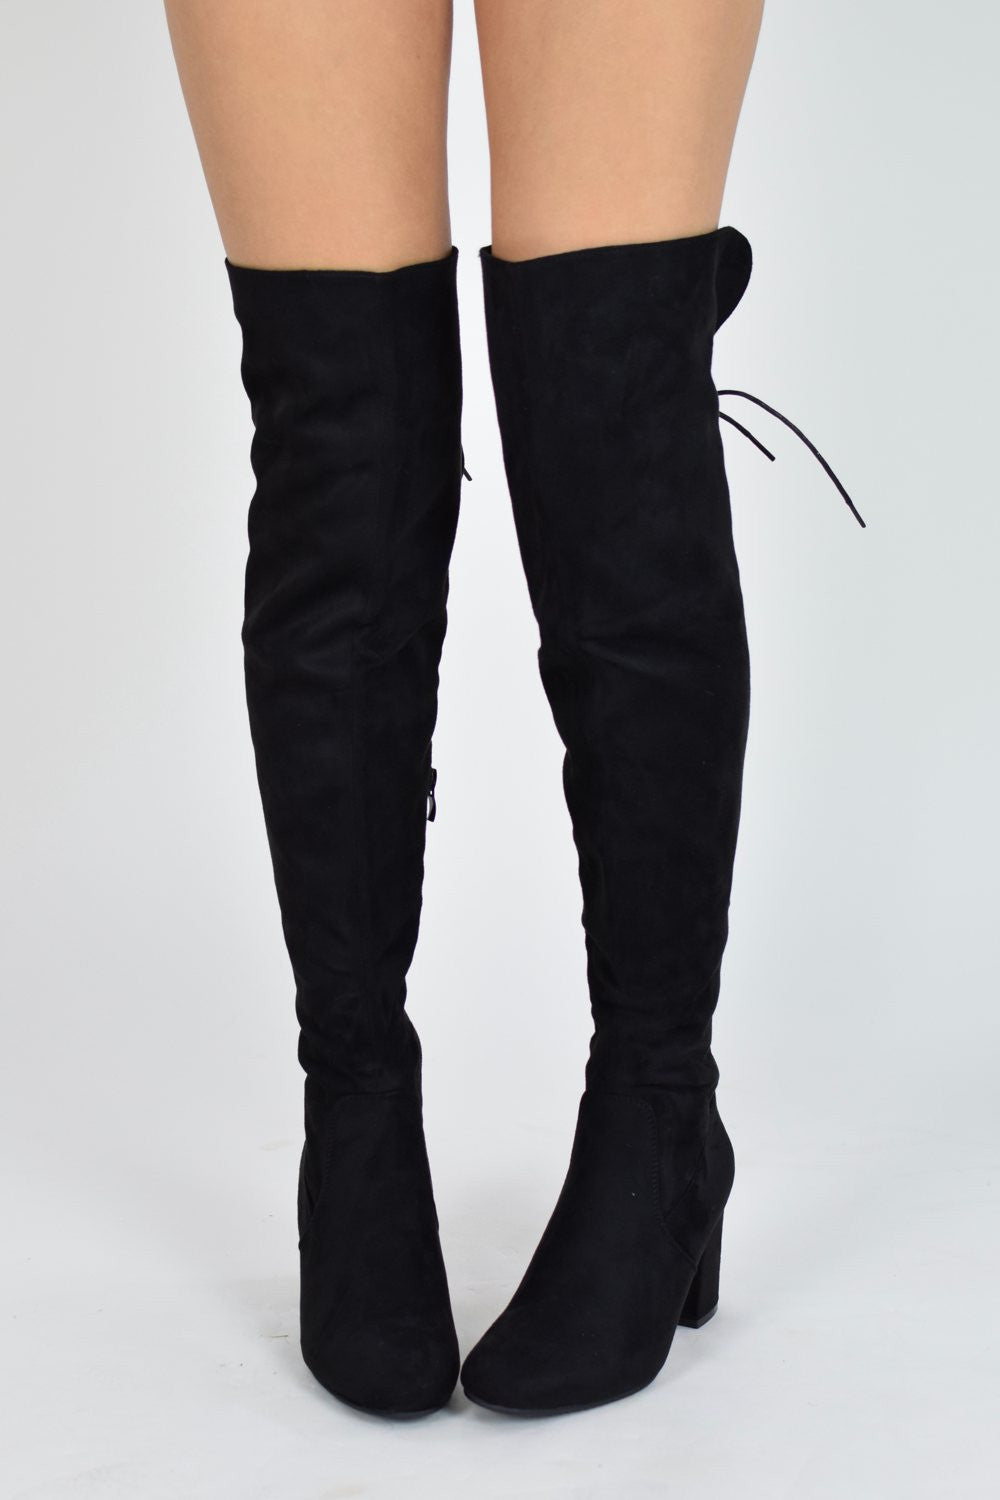 HIGH HOPES Lace Up Block Heel Over knee Boots - Black Suede - AJ Voyage - 40012f1c1